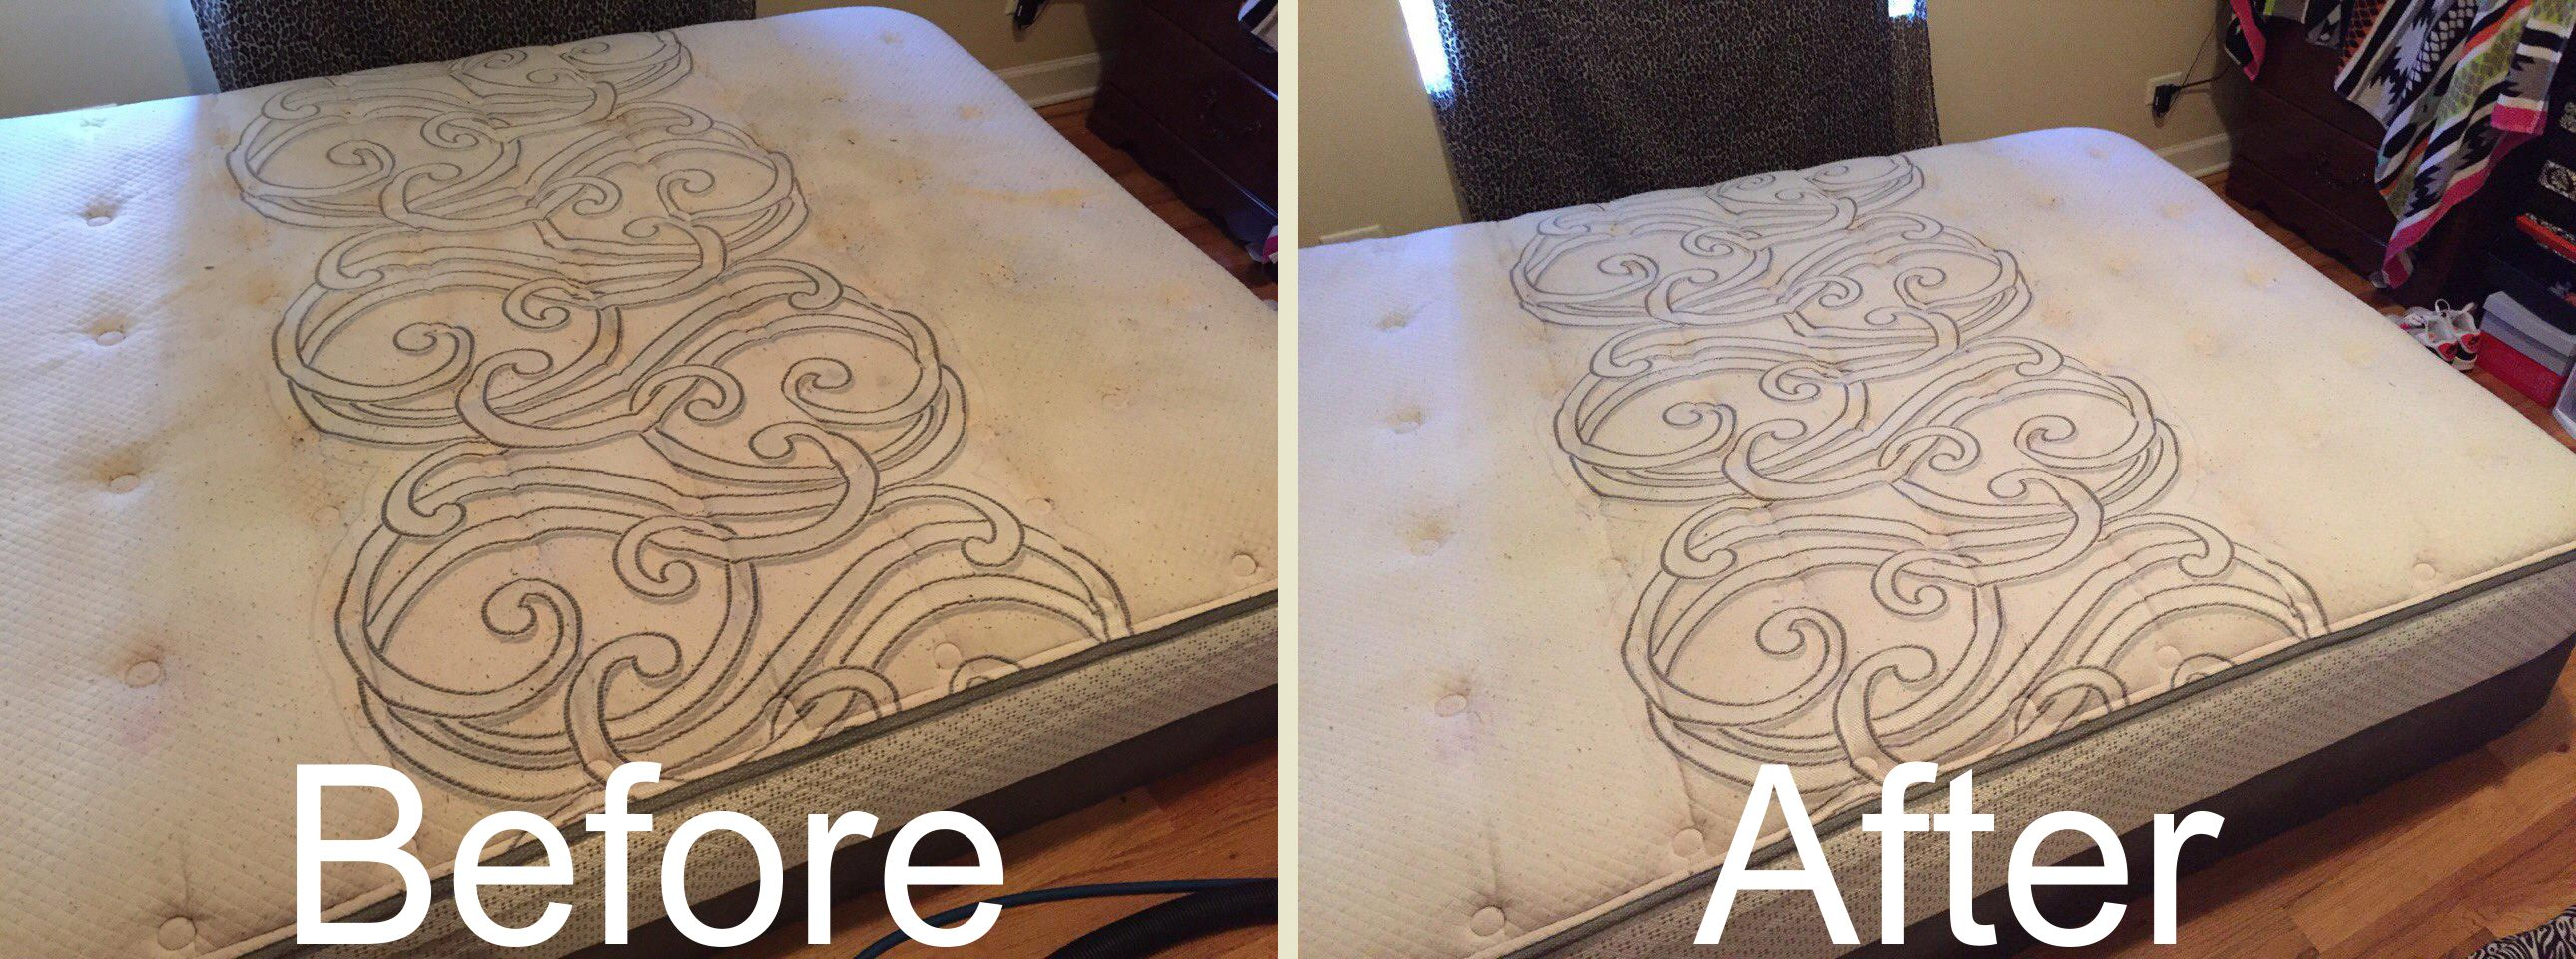 Mattress Cleaning Chicago prices start at only $25 00